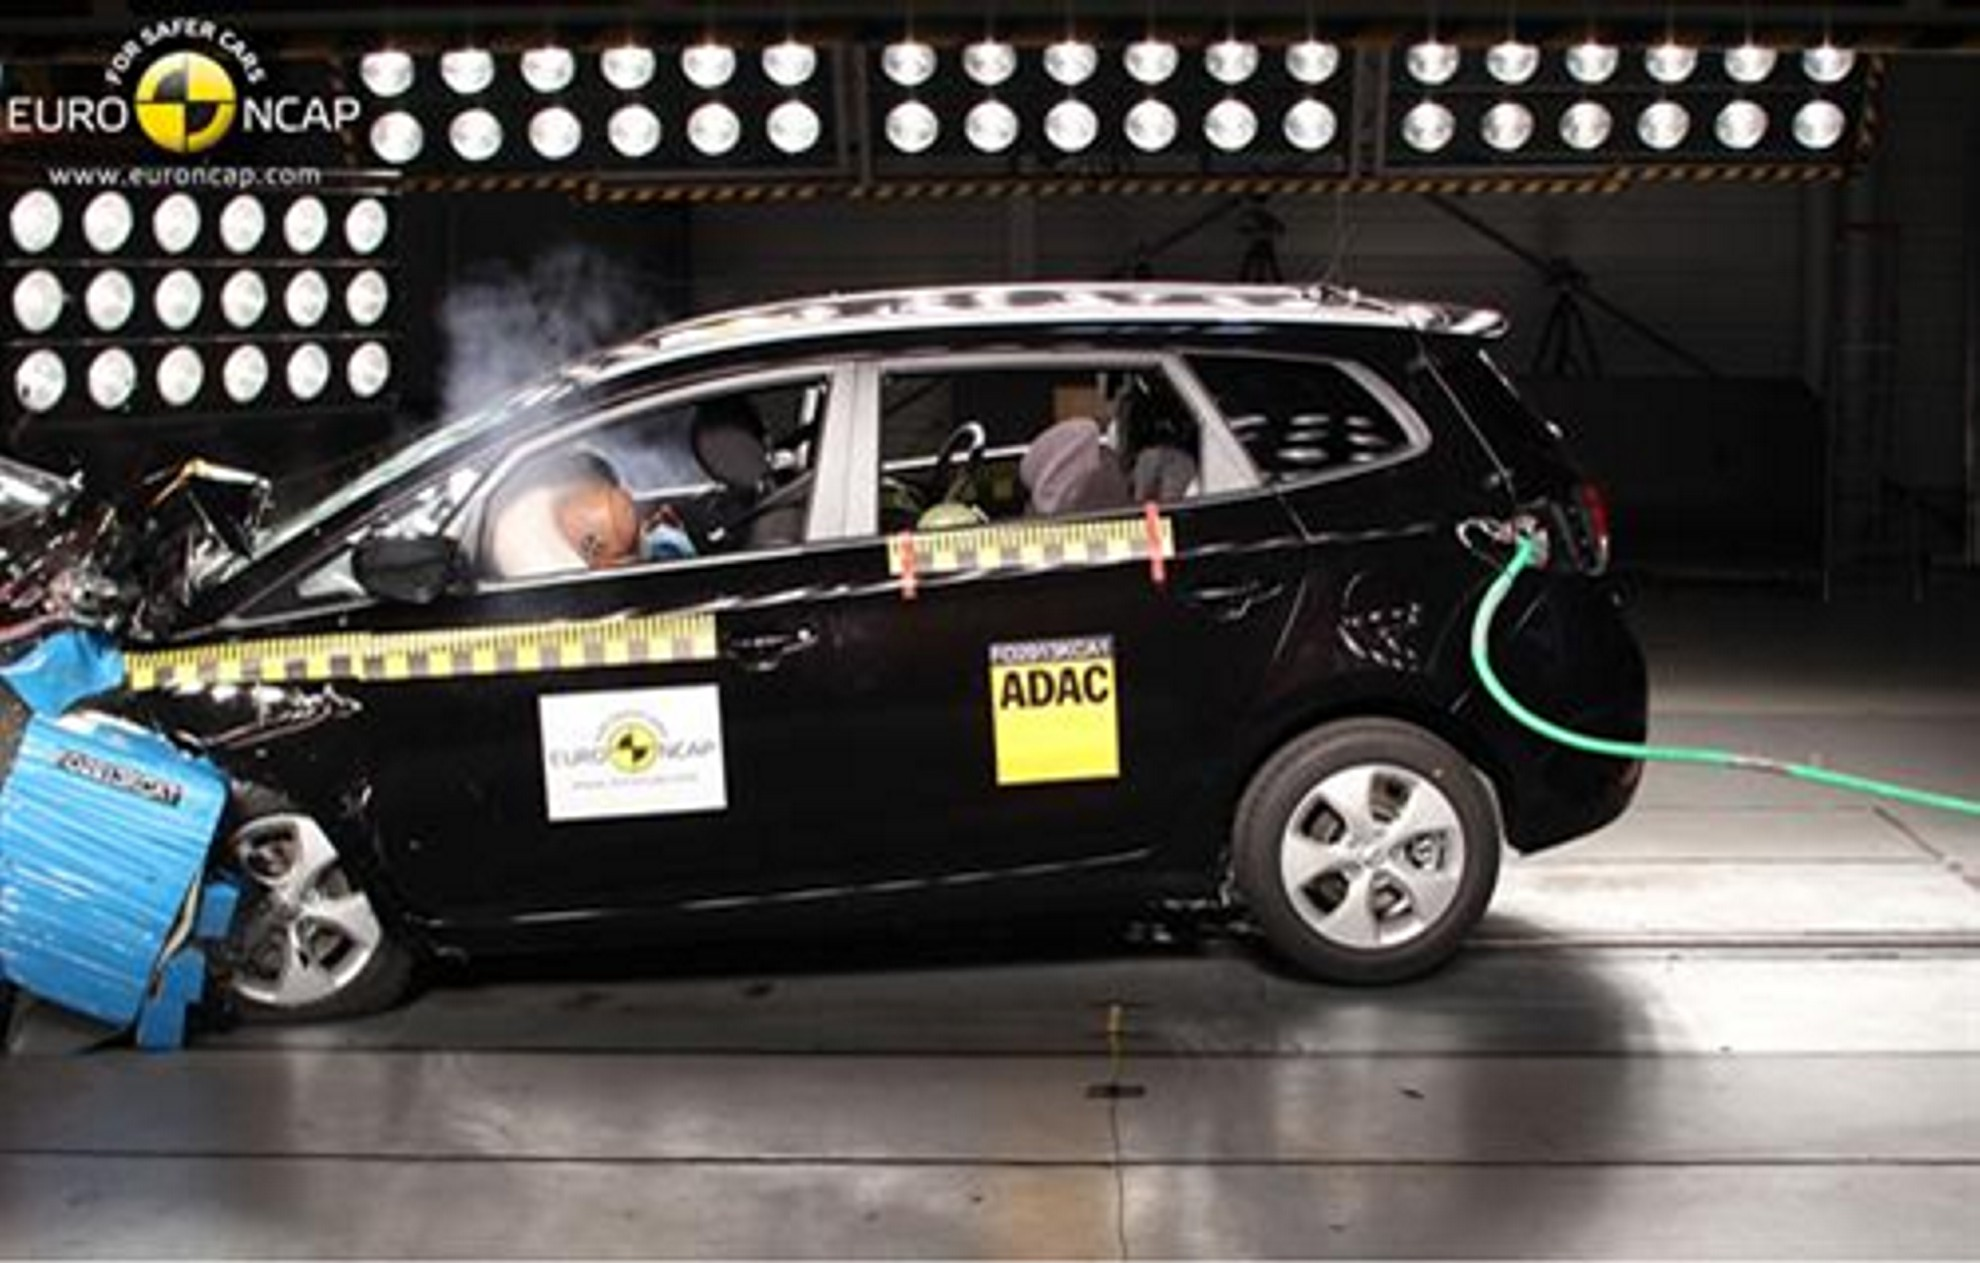 KIA CARENS Wins NCAP Safety Rating